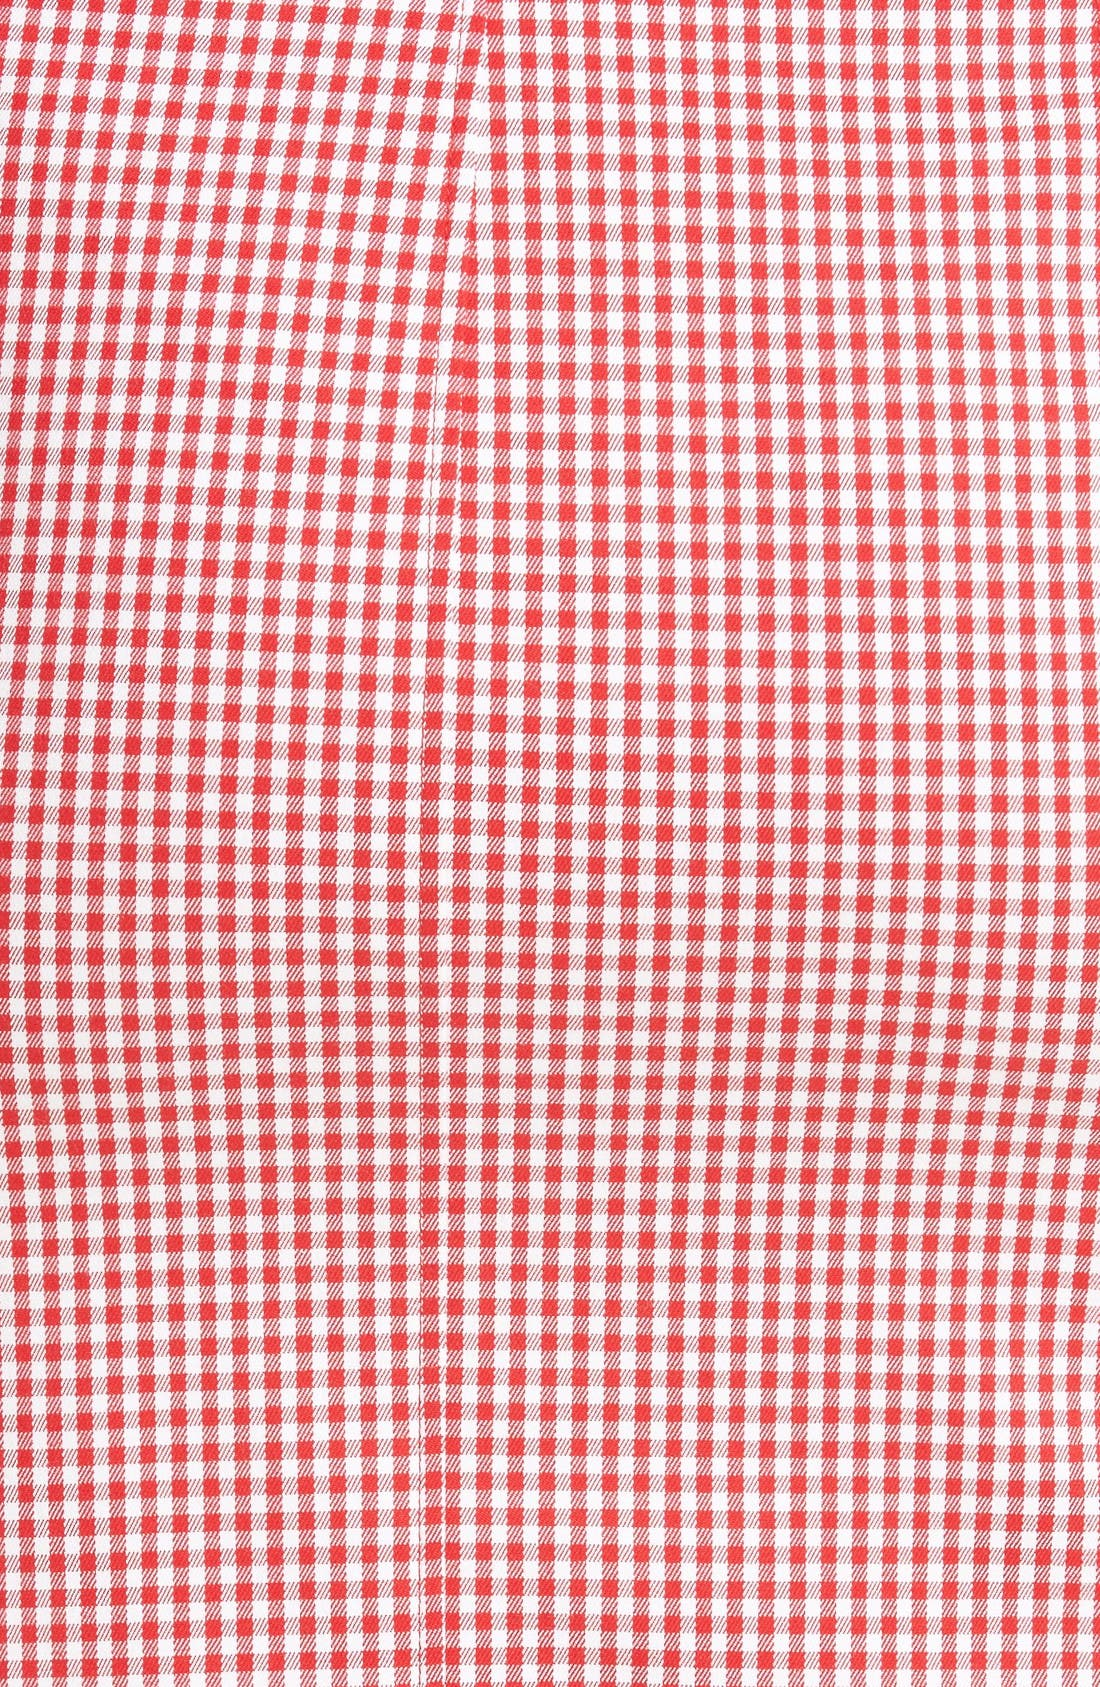 Alternate Image 3  - Altuzarra Wilcox Gingham Stretch Cotton Skirt